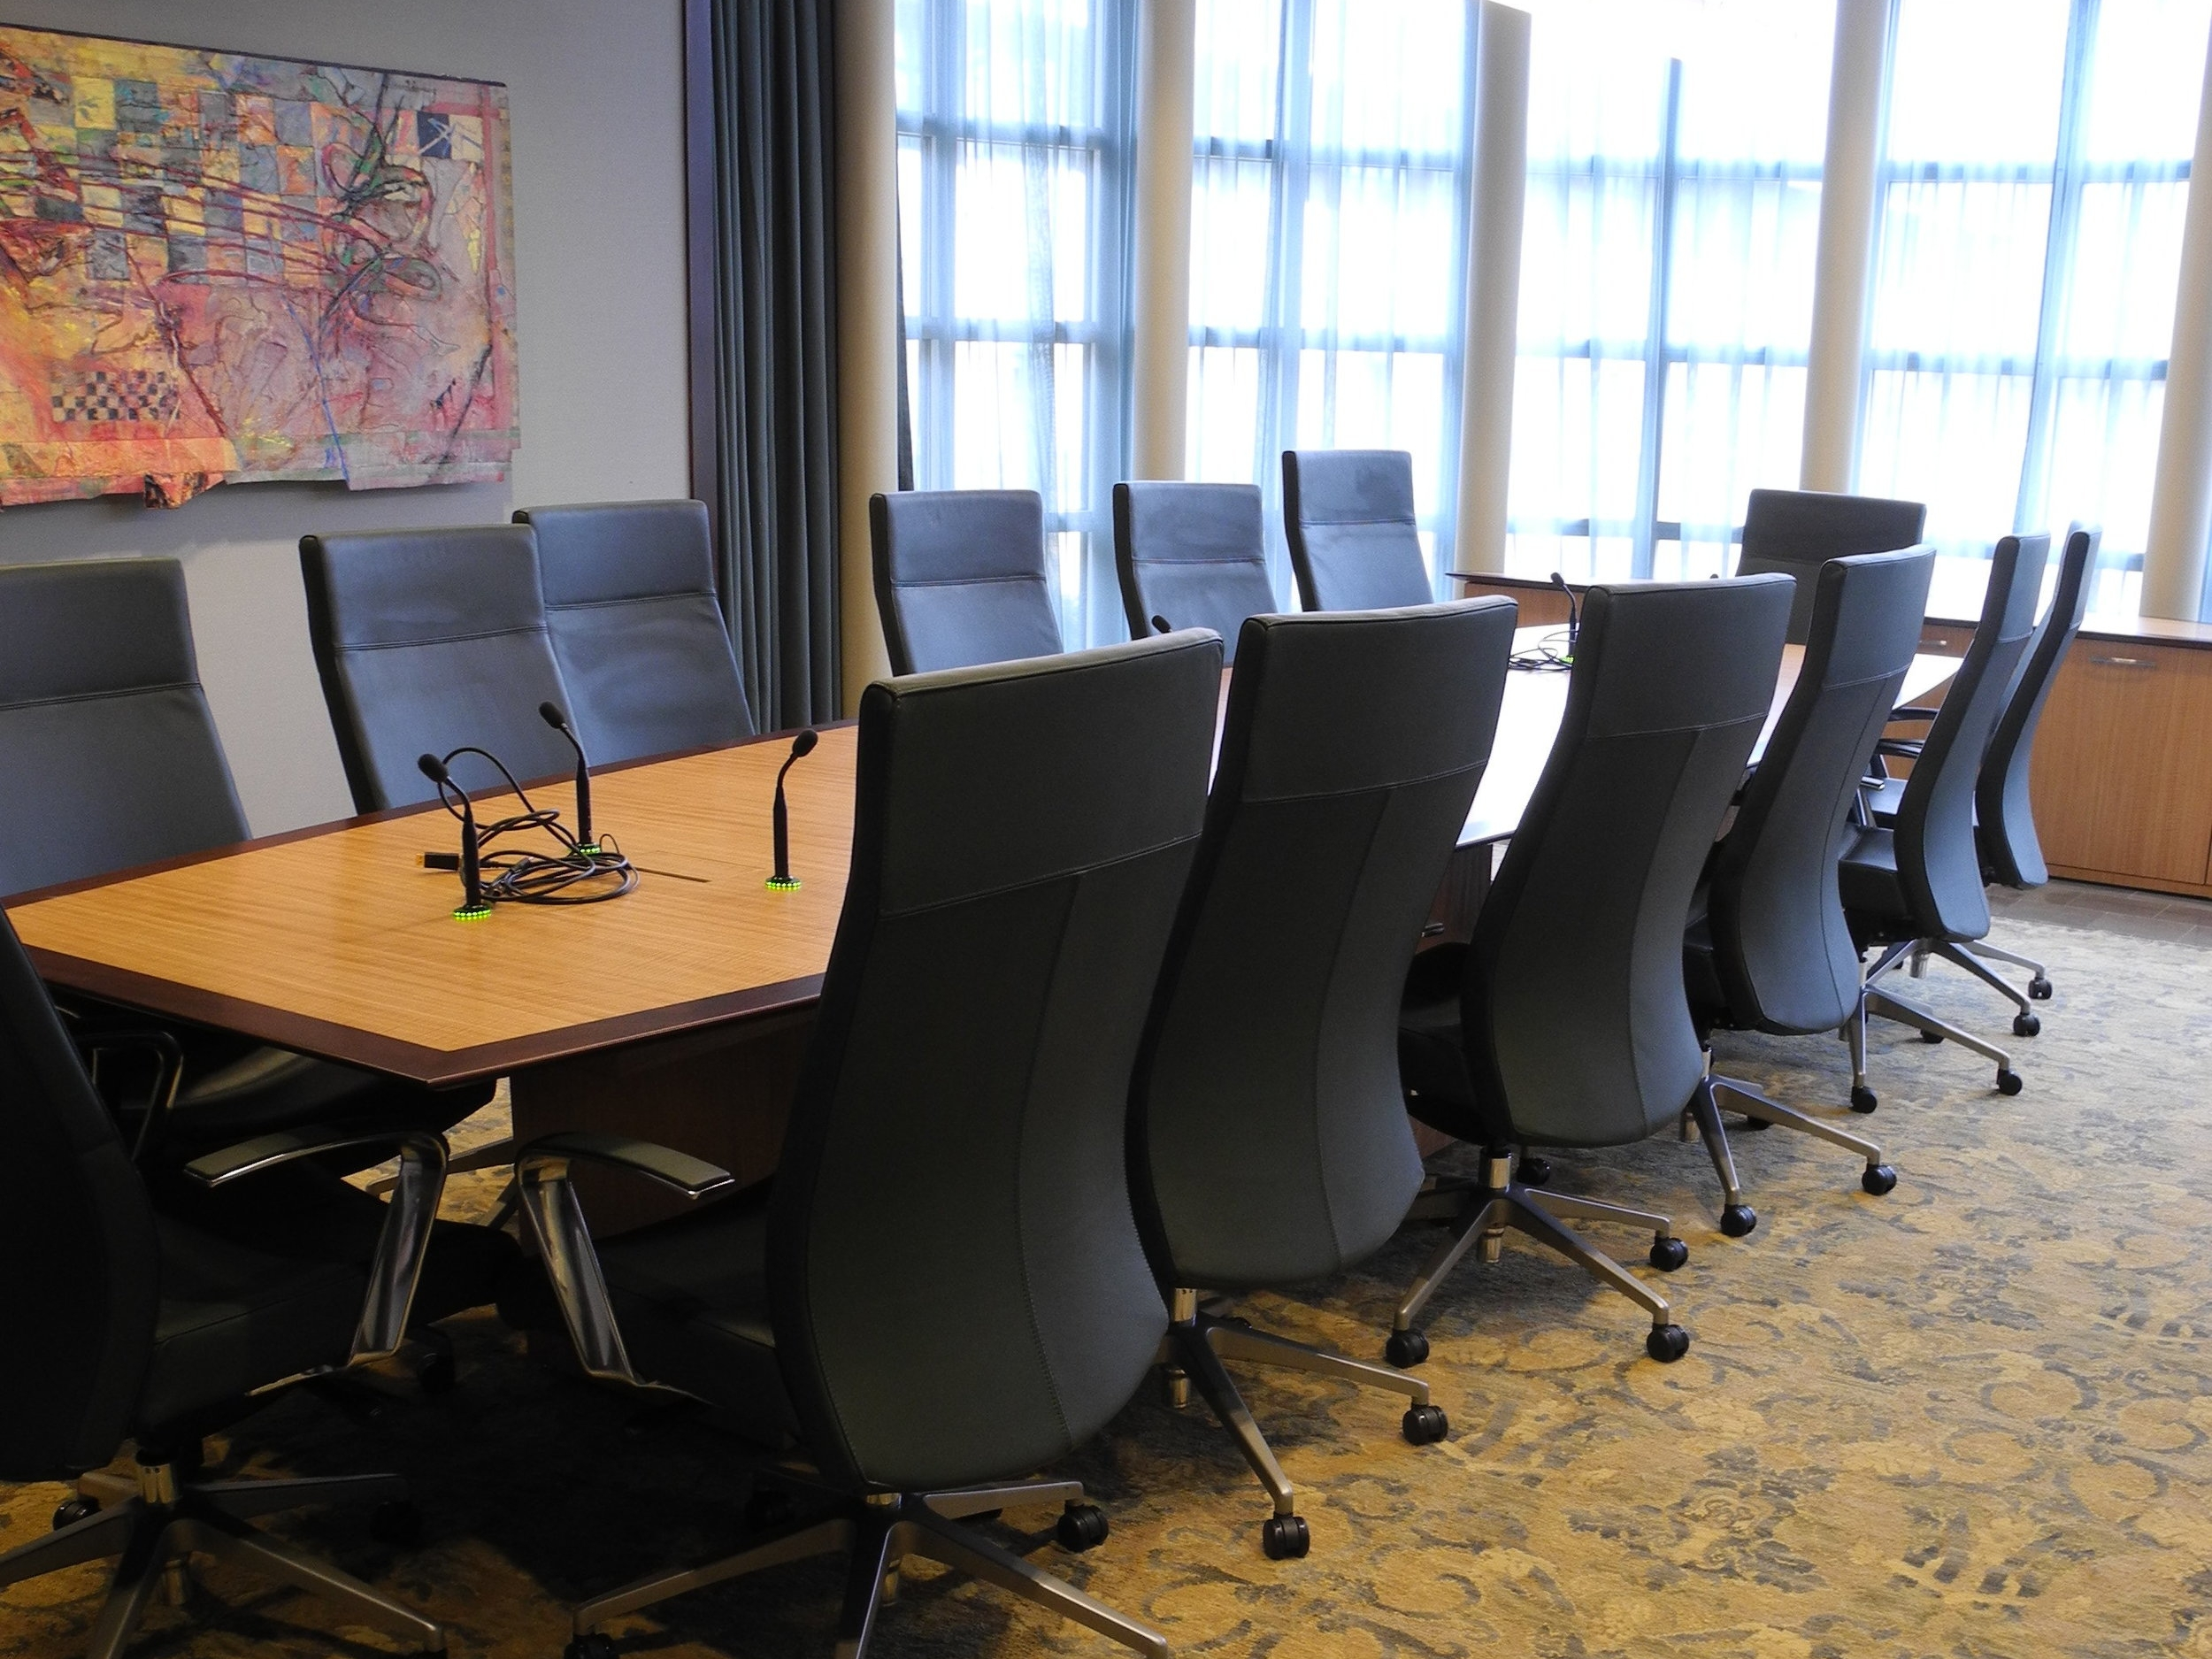 conference-room-design-corporate-commercial-interior-design-technology.jpg